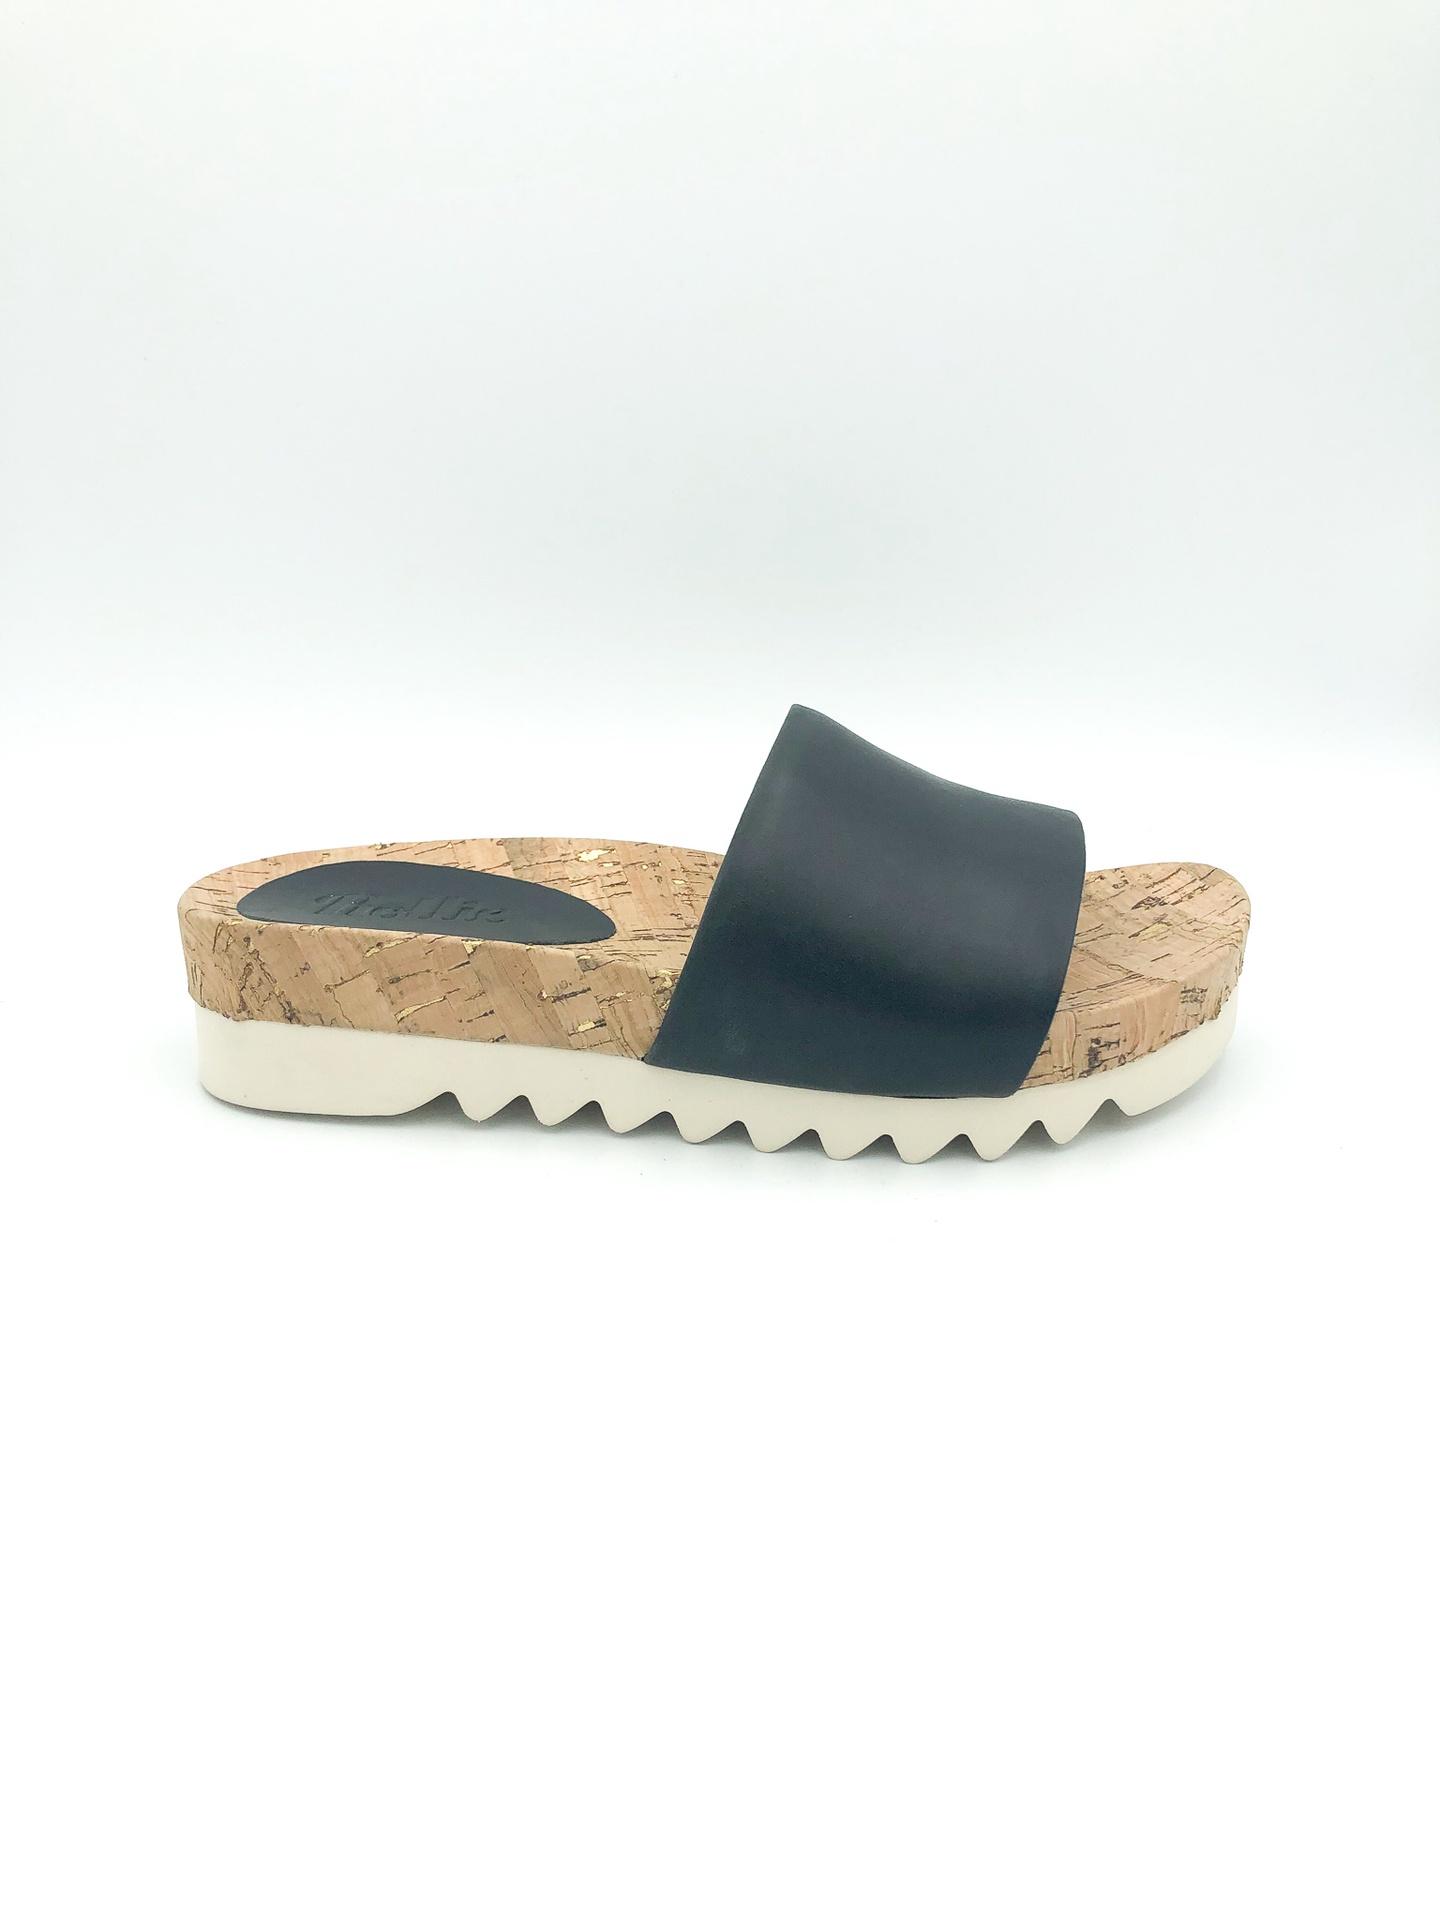 ROLLIE - SANDAL SLIDE TOOTH WEDGE IN BLACK